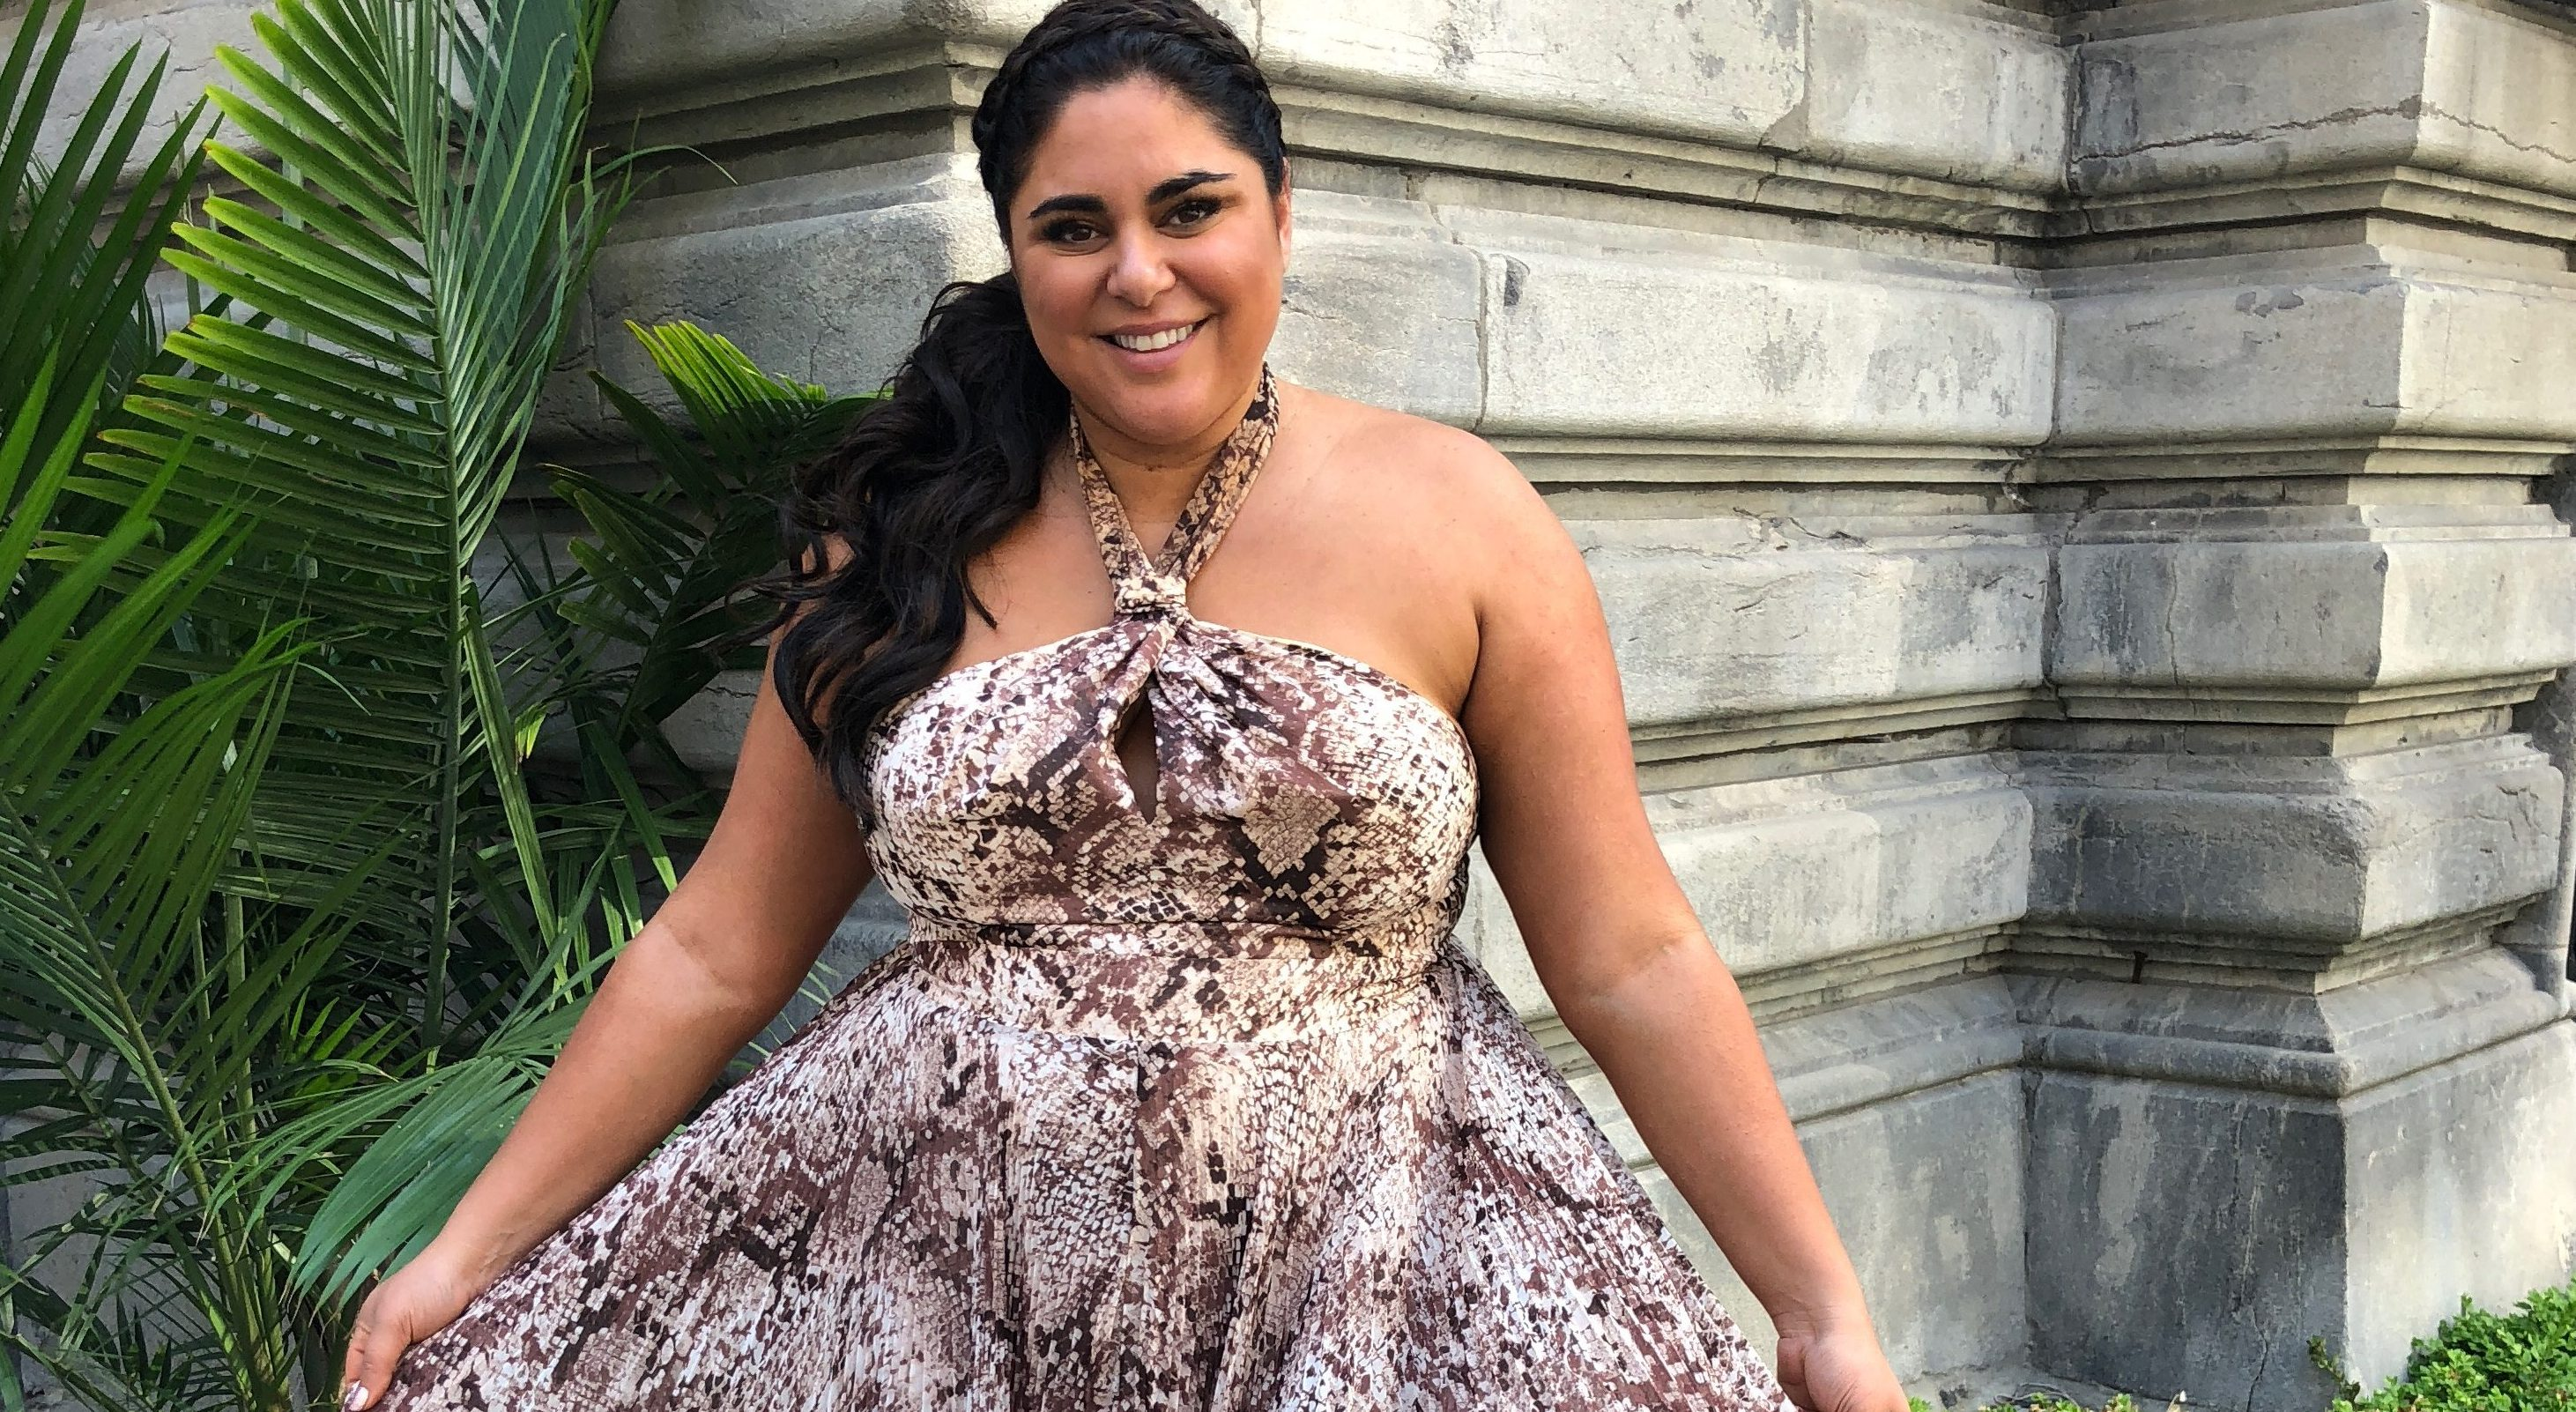 Positively plus: Roxy Earle on her Le Château extended size collection